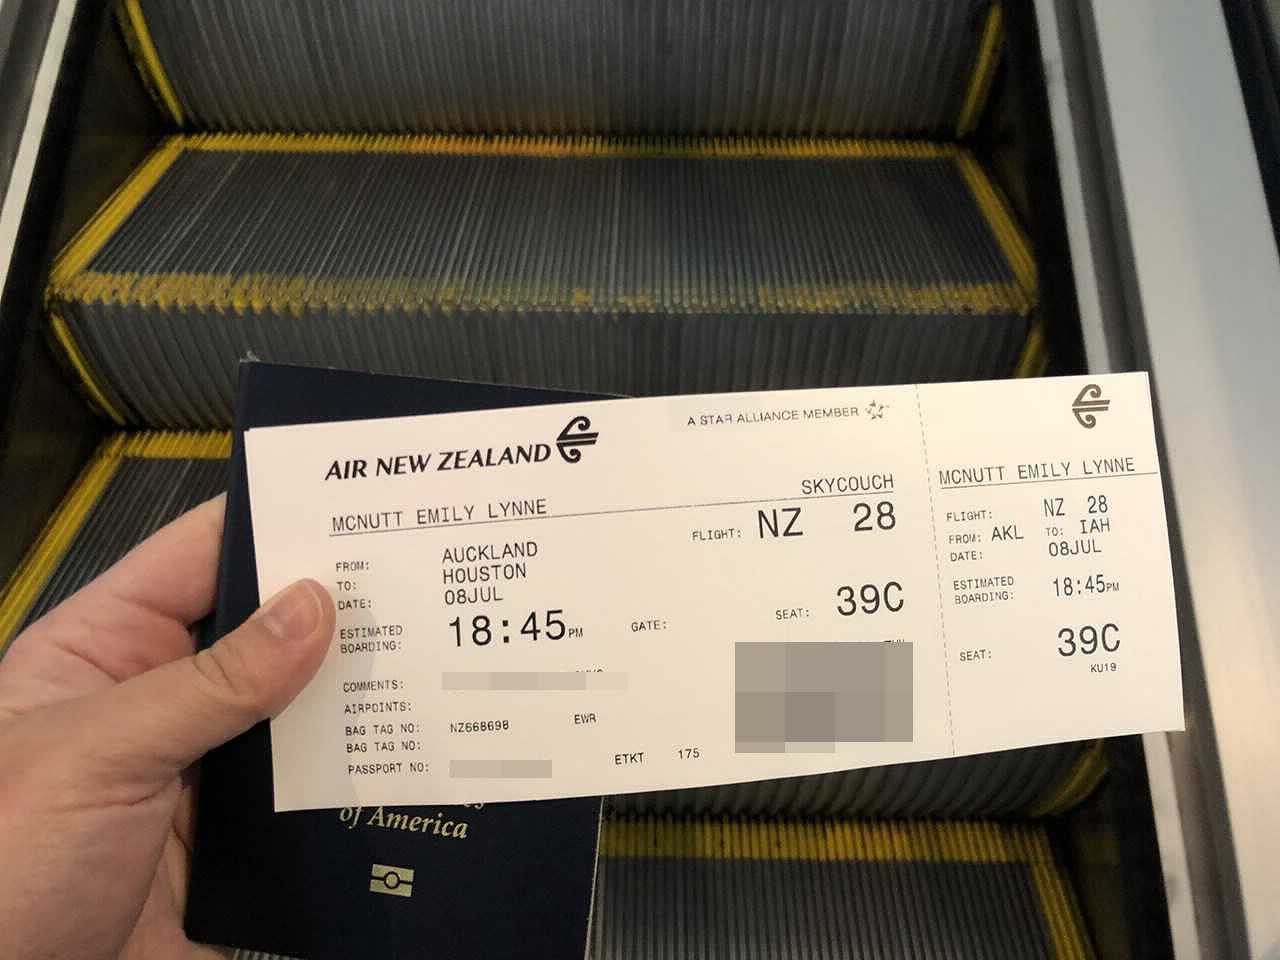 Review Air New Zealand S Skycouch 787 9 From Auckland To Houston